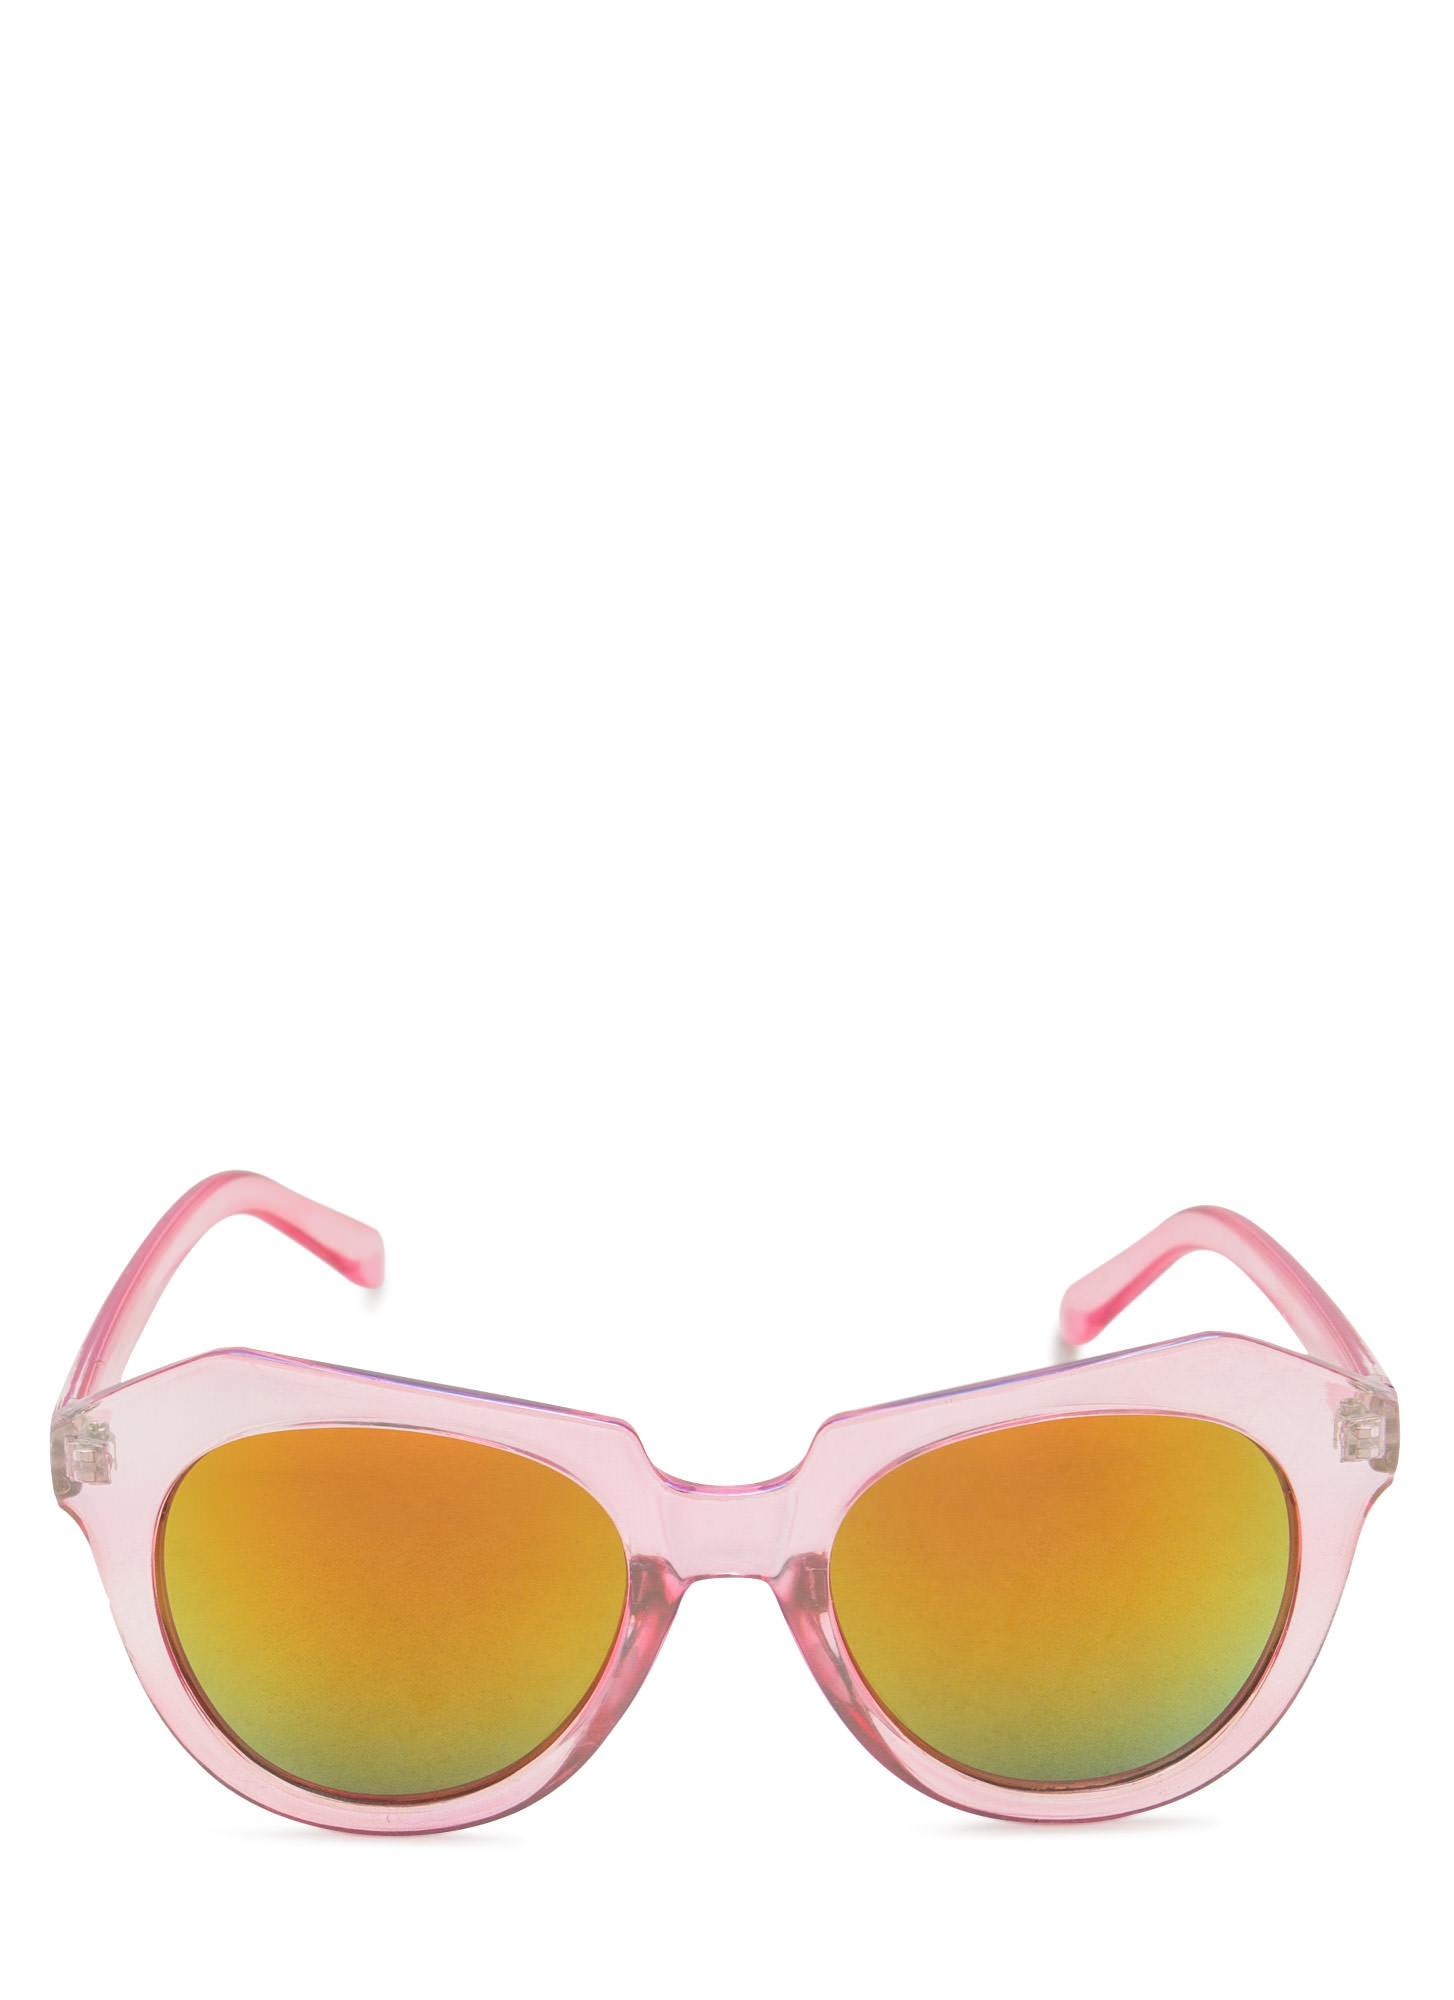 Angled Look Mirrored Sunglasses LTPINK